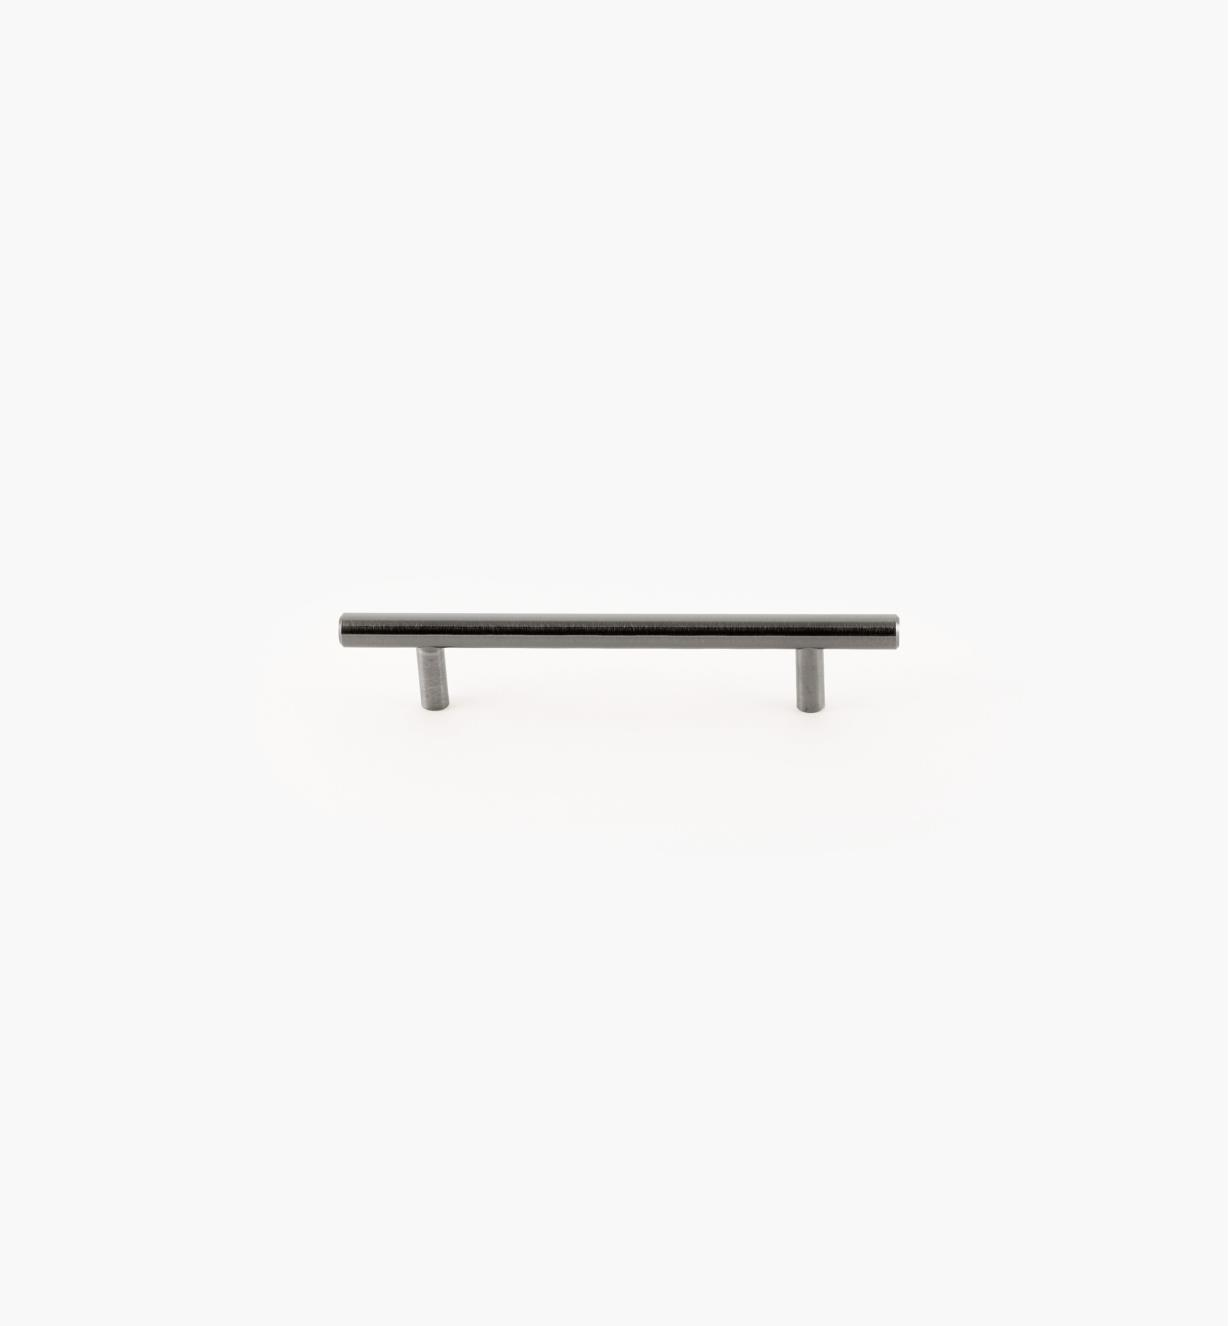 02A1482 - Bar Gunmetal 128mm (187mm) Pull, each